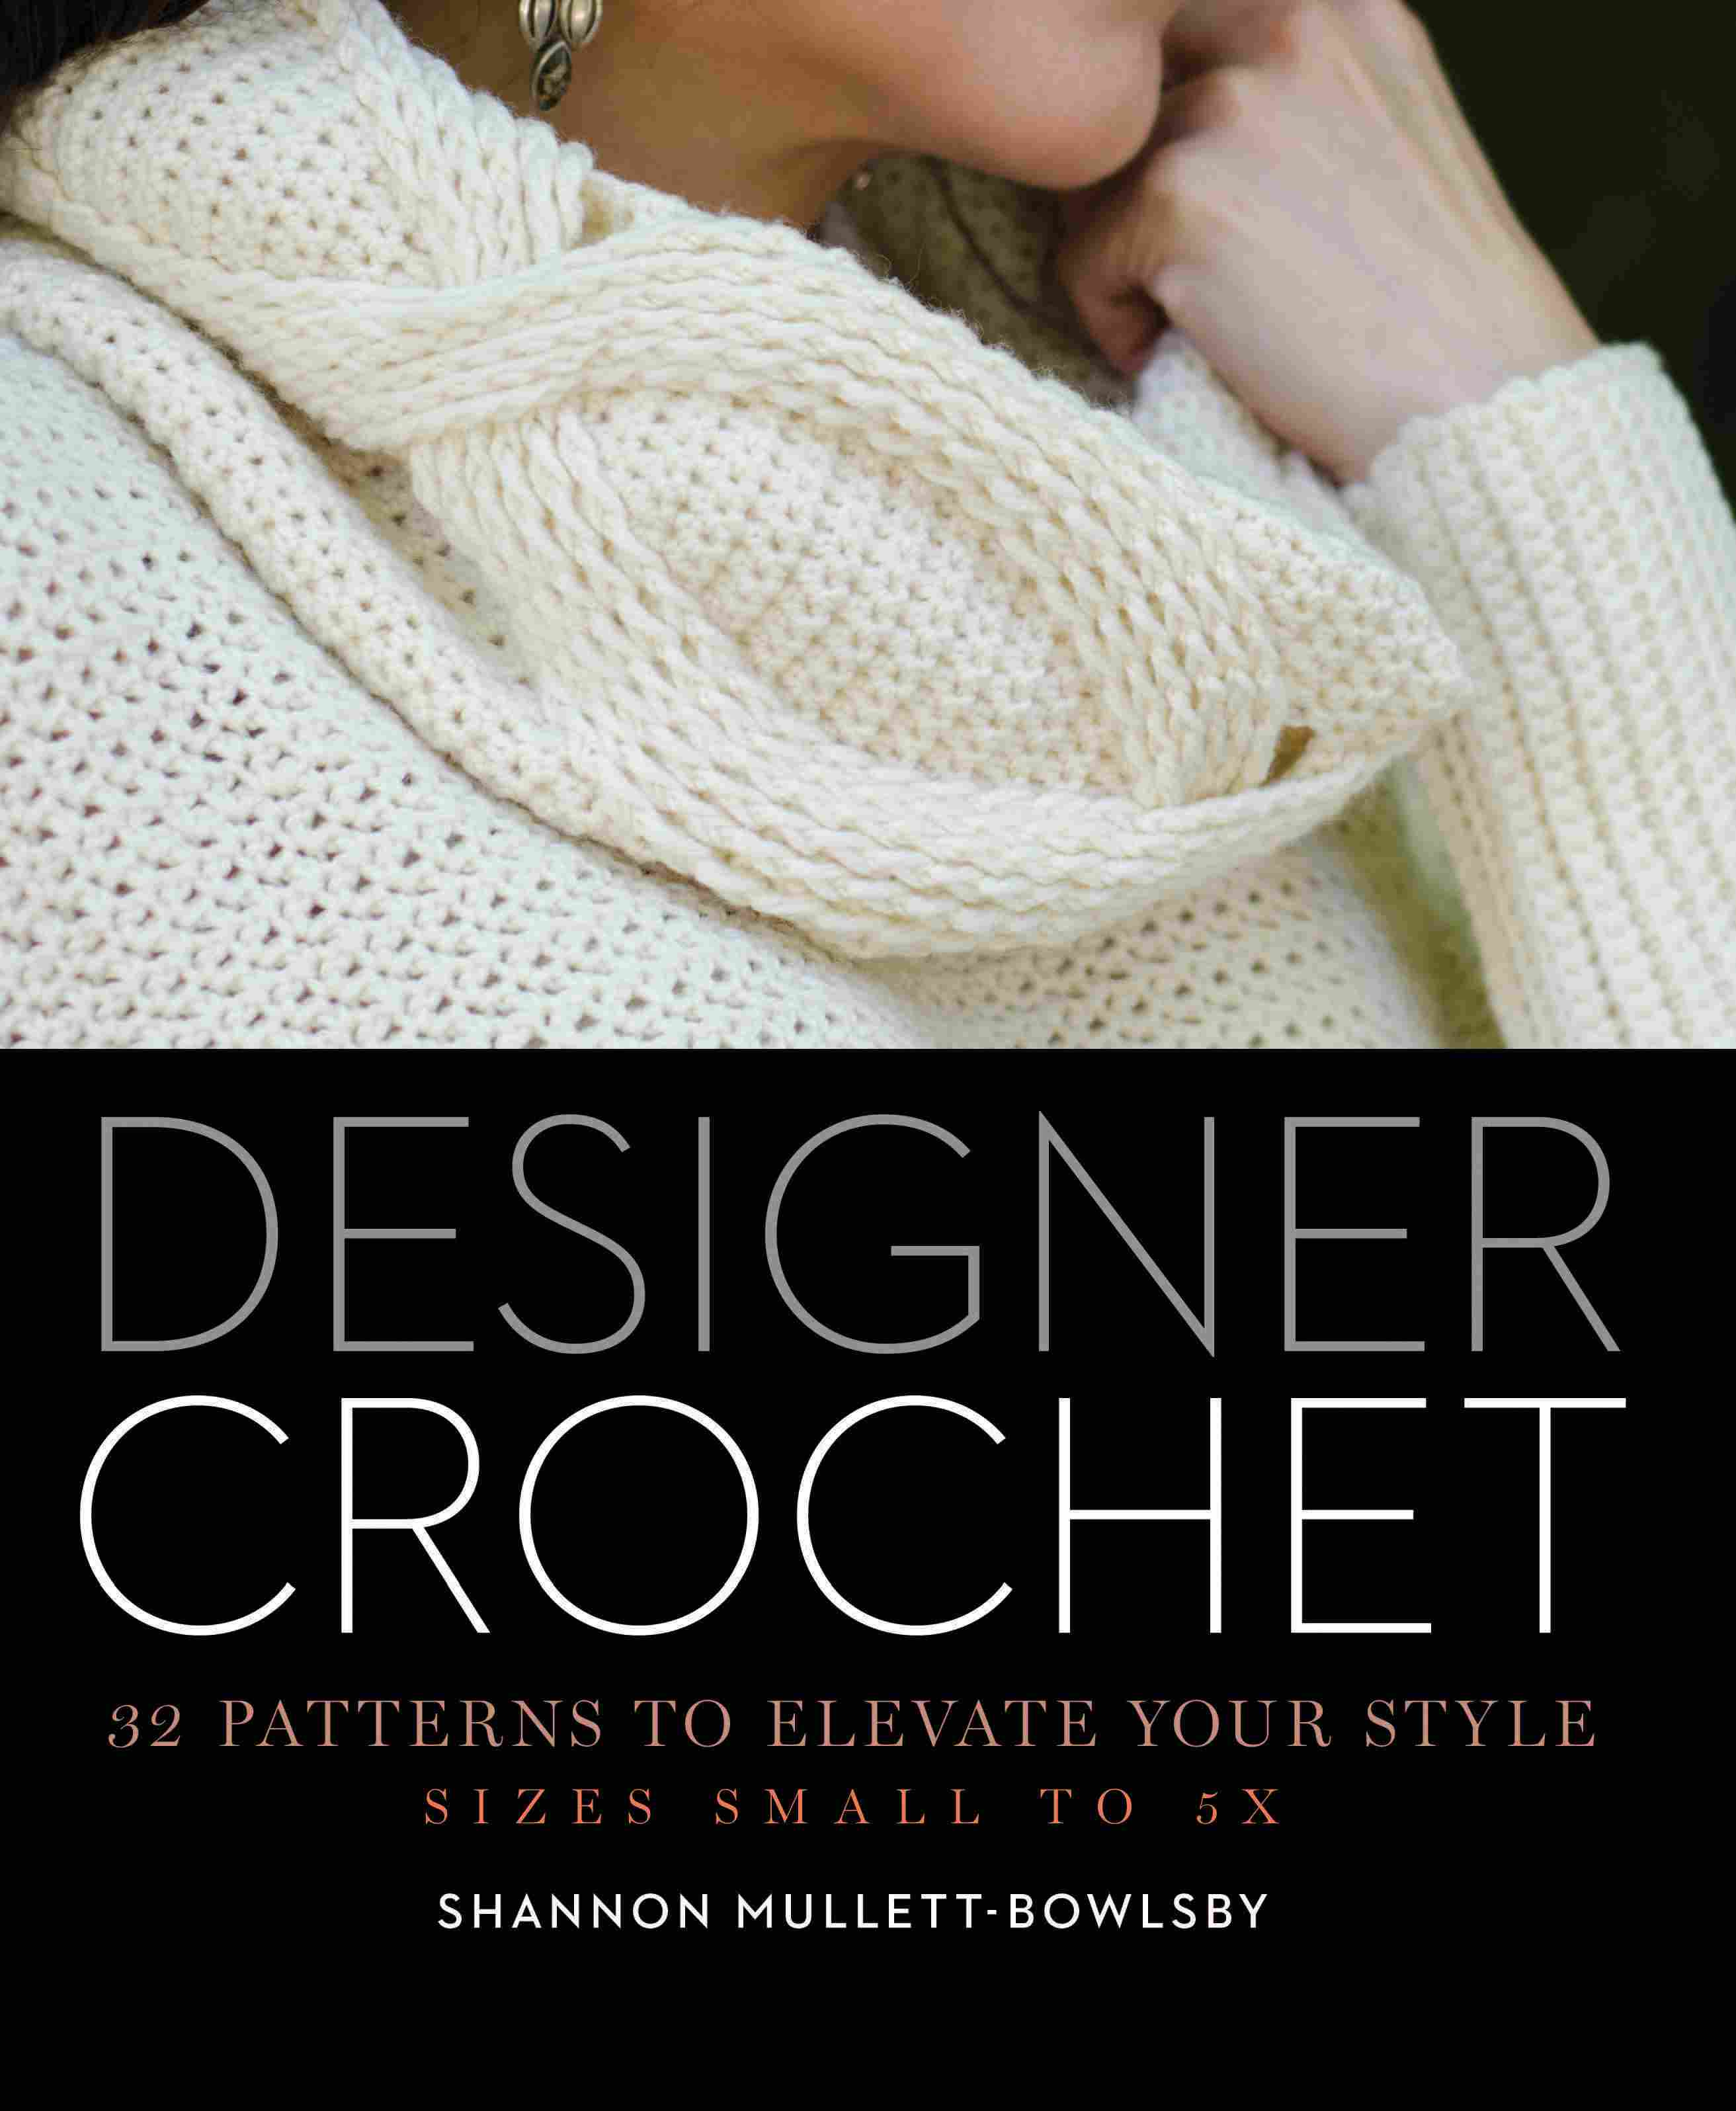 Frequently Asked Questions About Crochet